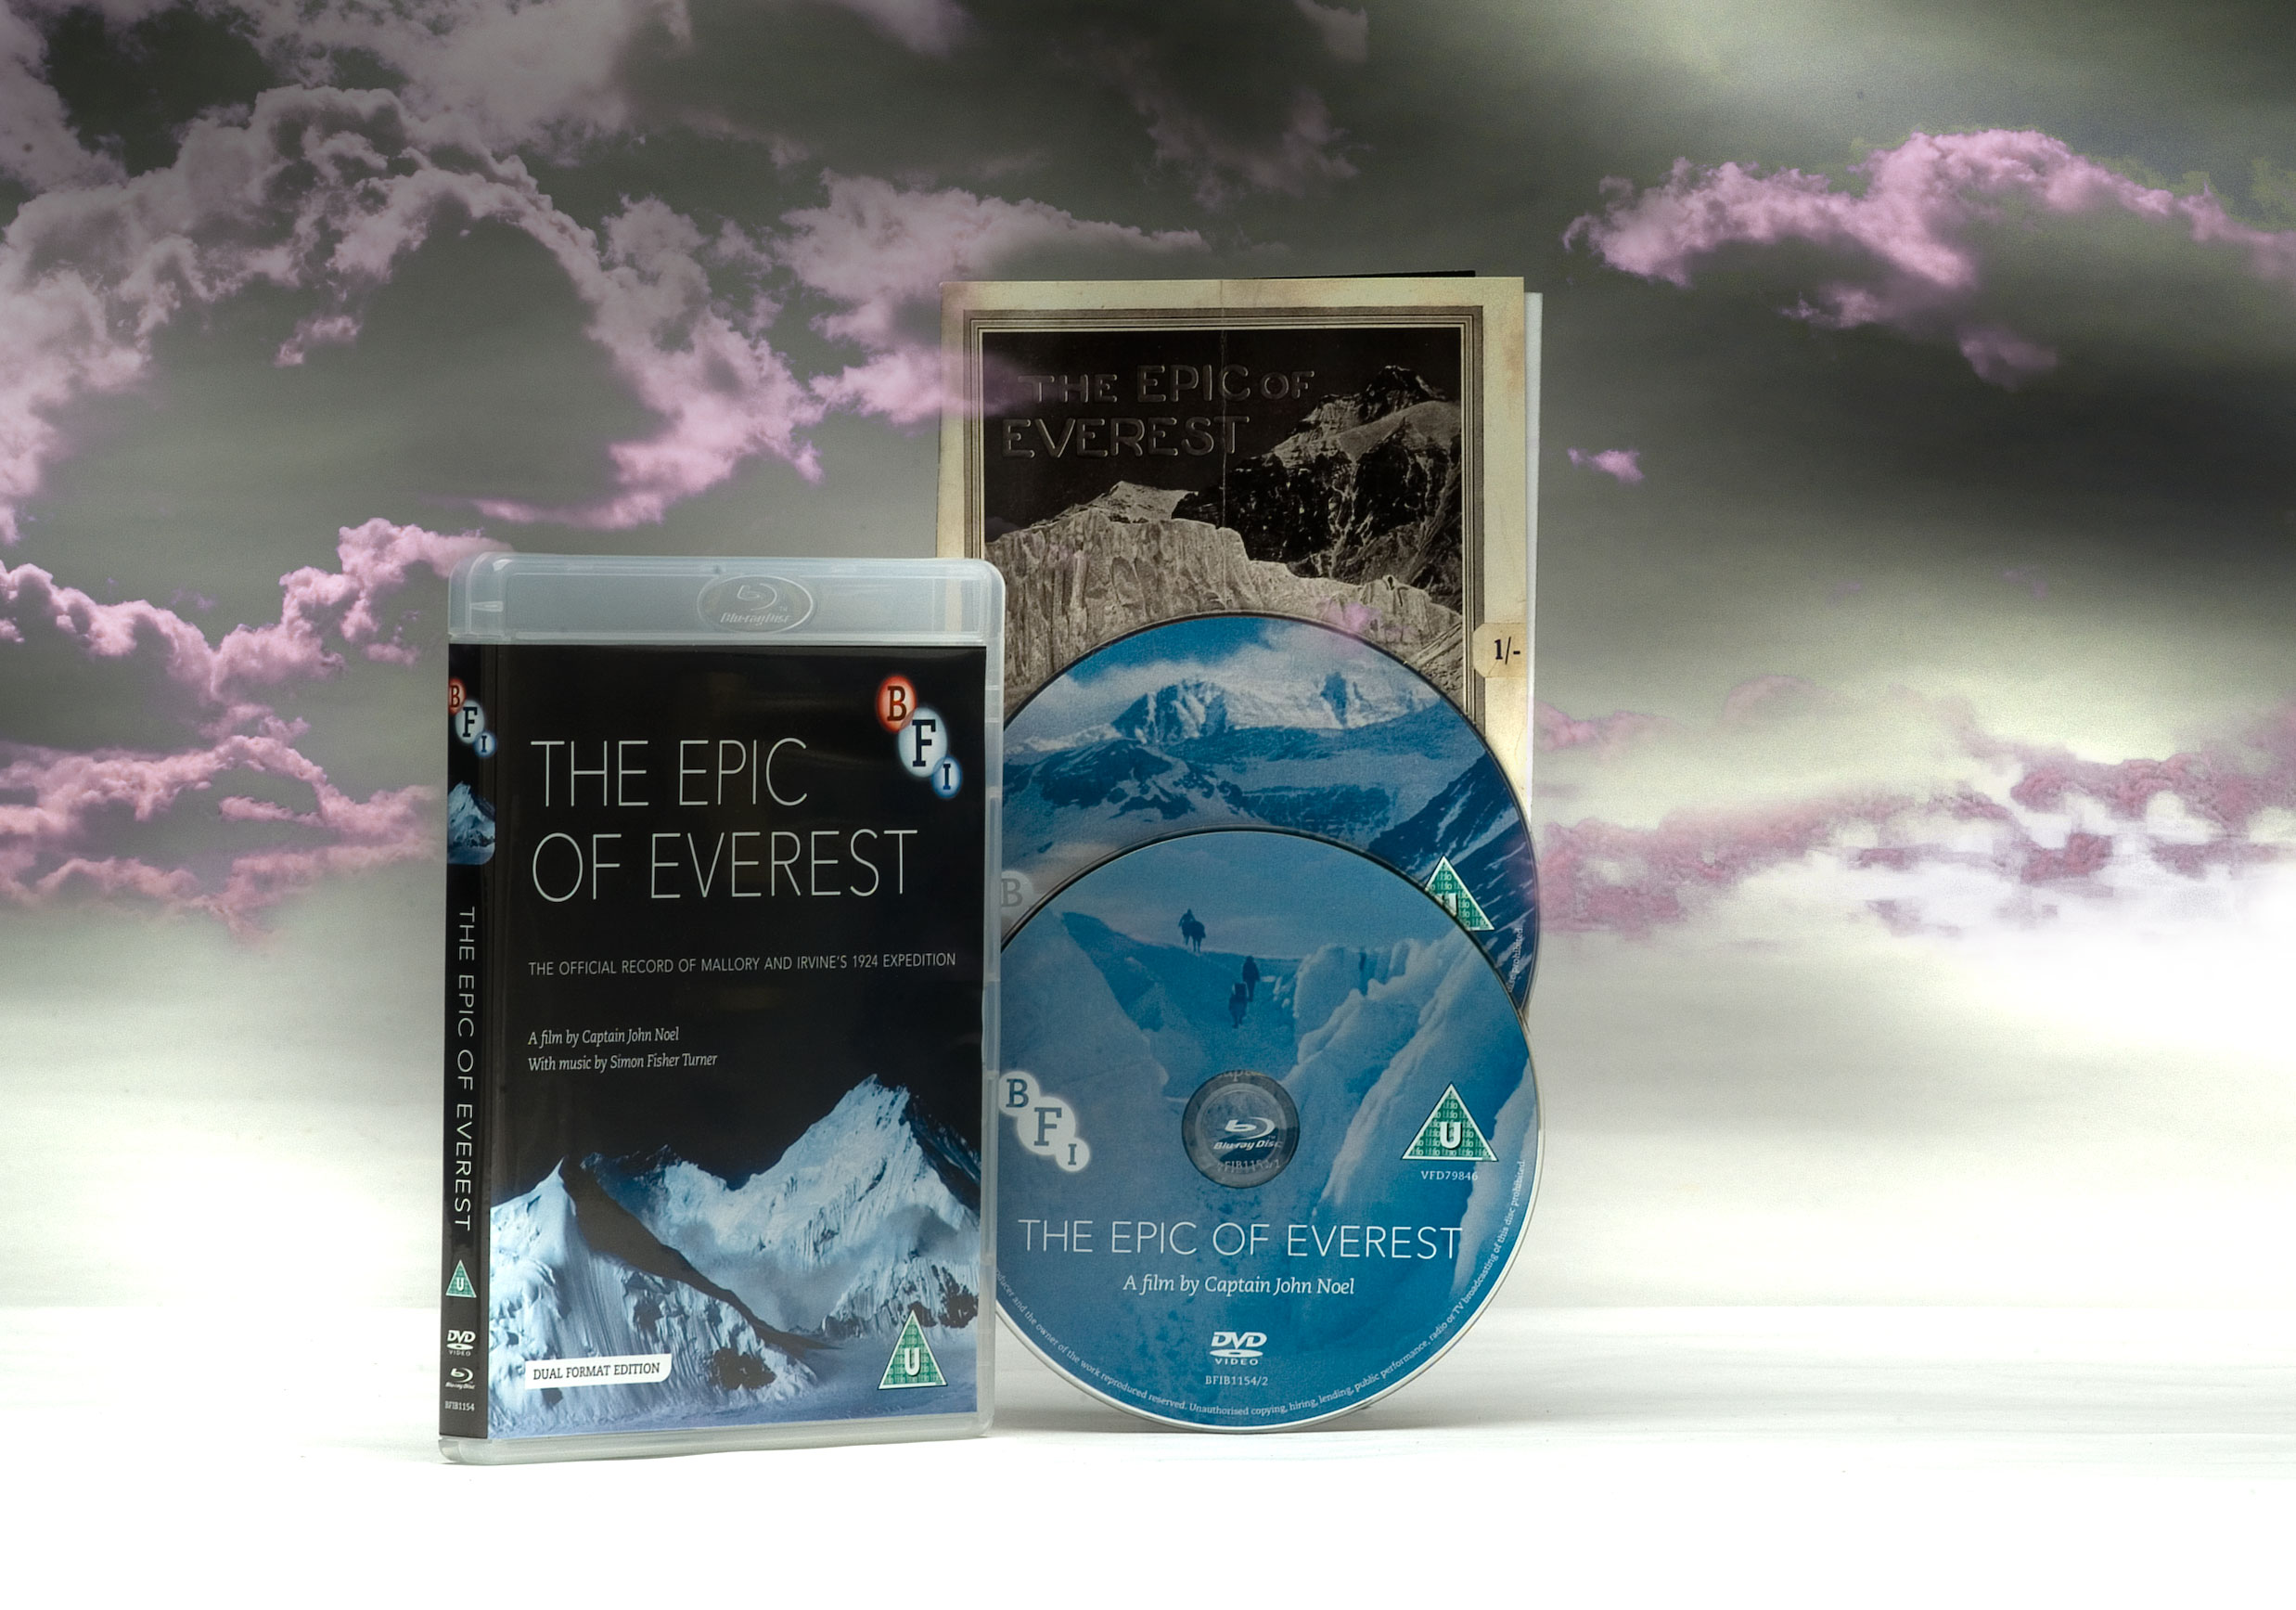 Buy The Epic of Everest (Dual Format Edition)